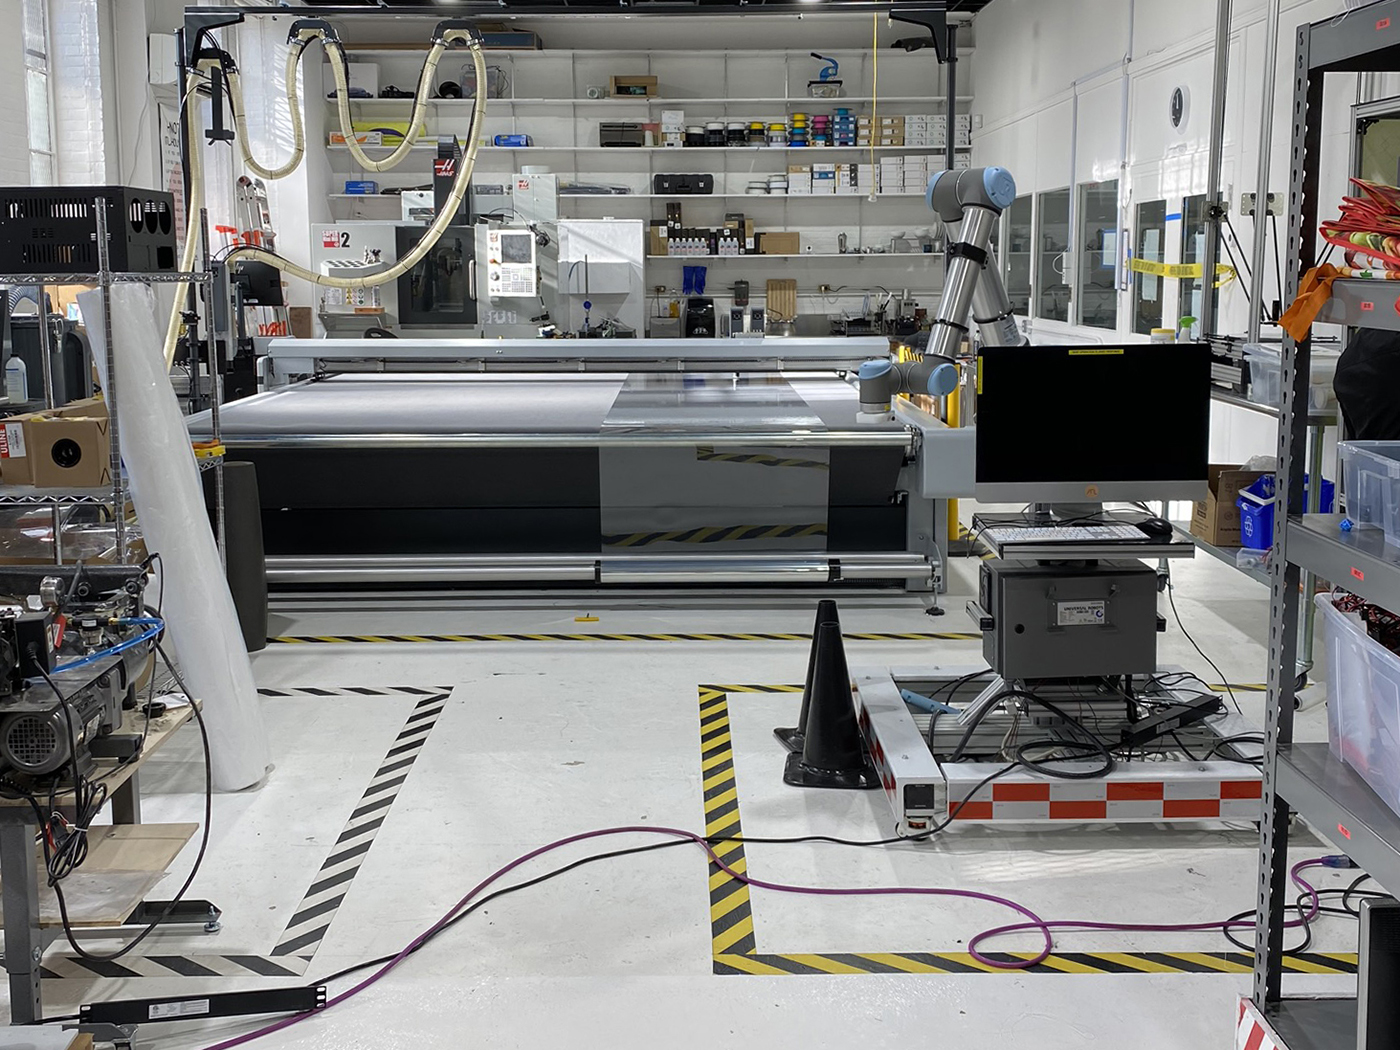 Roll feed setup with the Zünd digital cutter for the non-stop automatization of cutting shields for attachment to a 3D-printed visor (photo by Scott Sorenson)